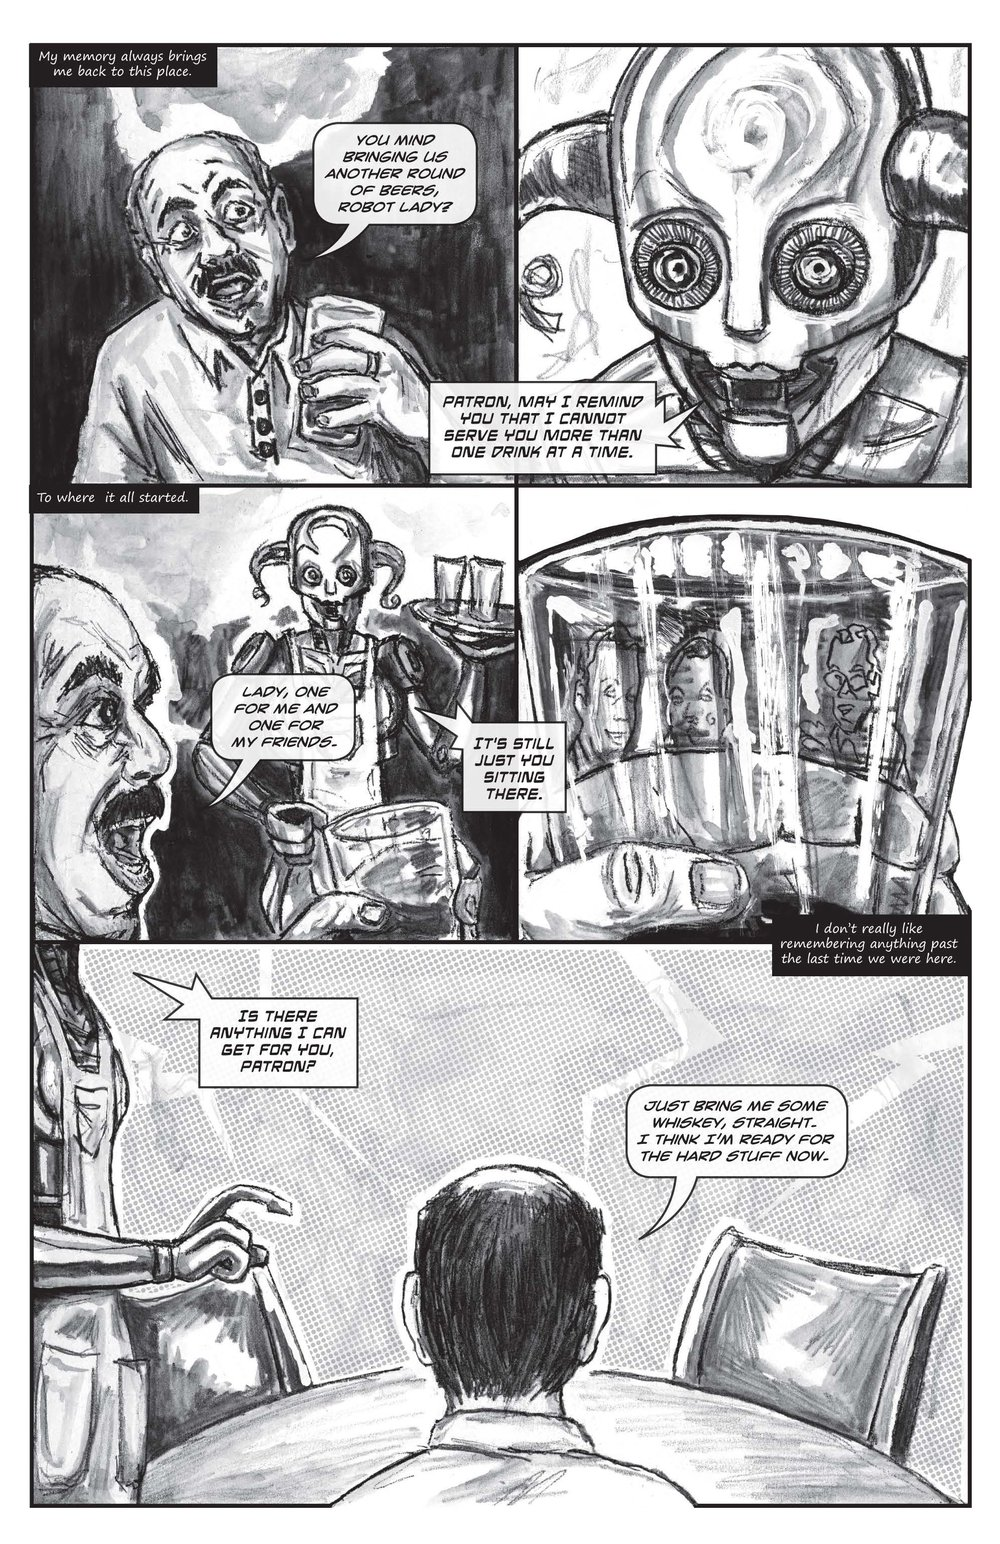 TheGuys_issue1_Page_16.jpg